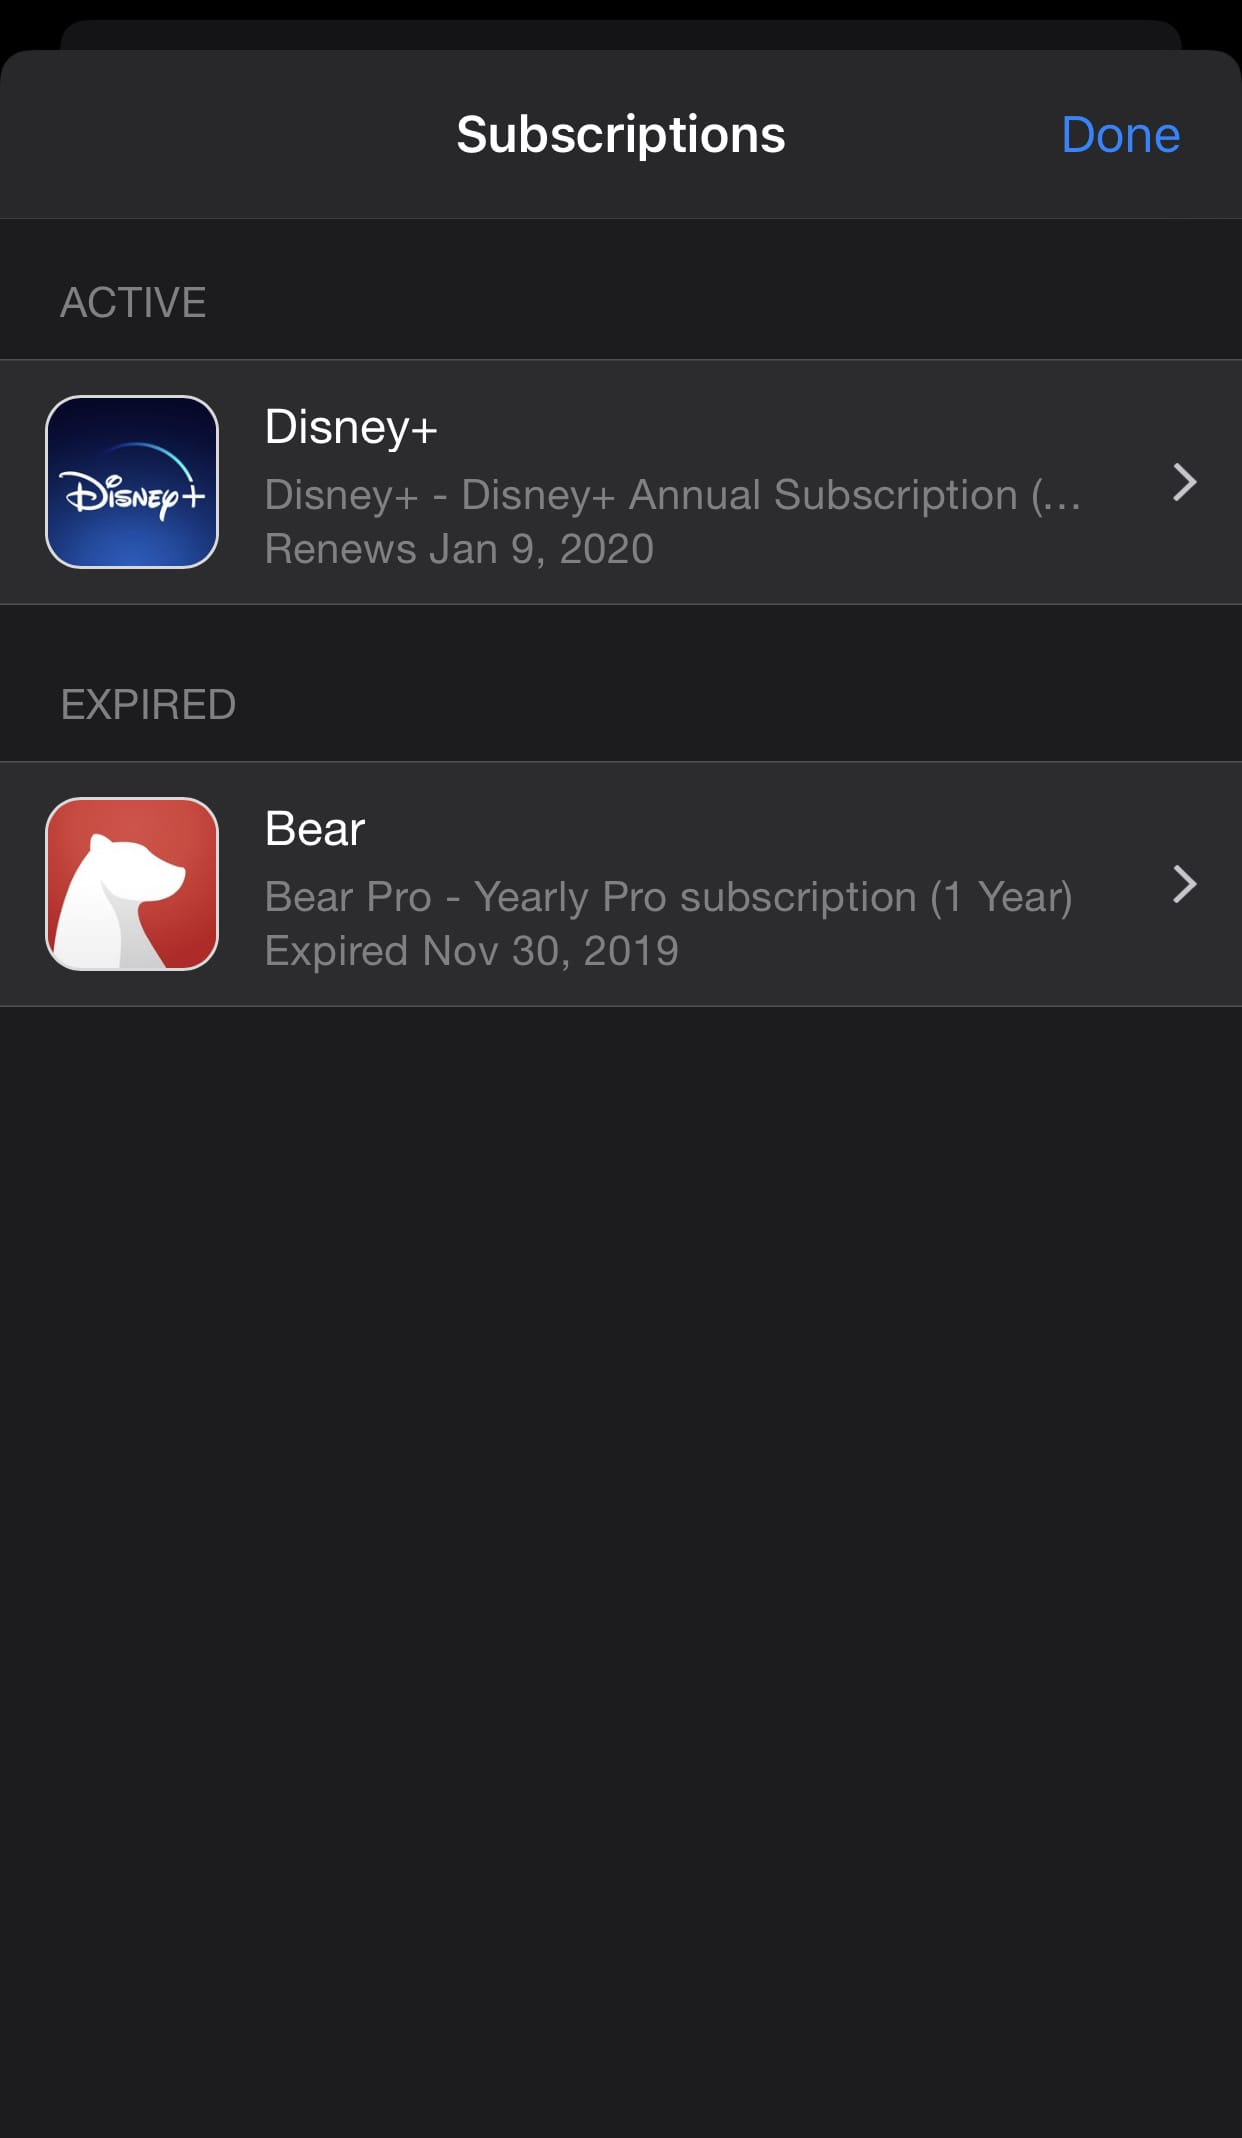 Subscription management in iOS